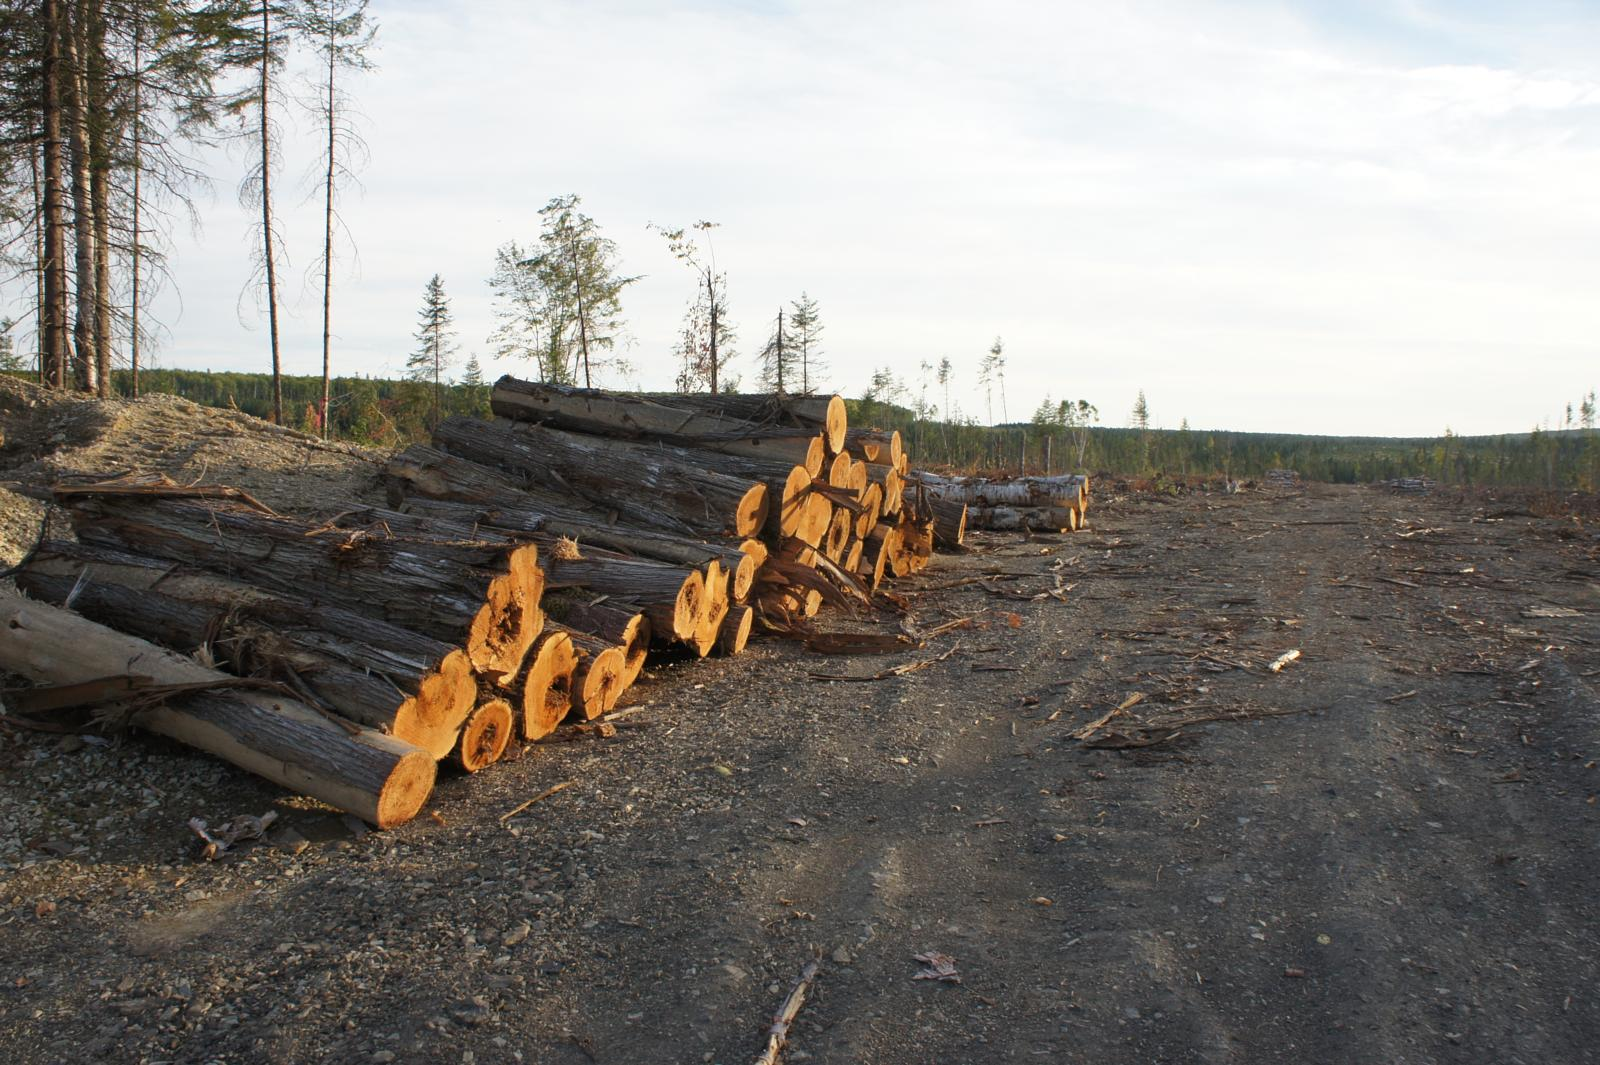 Foto de The Great New Brunswick Clearcut and Herbicide Spray Site Trail: Route 180, Whole Tree Removal Clearcut, 2018.